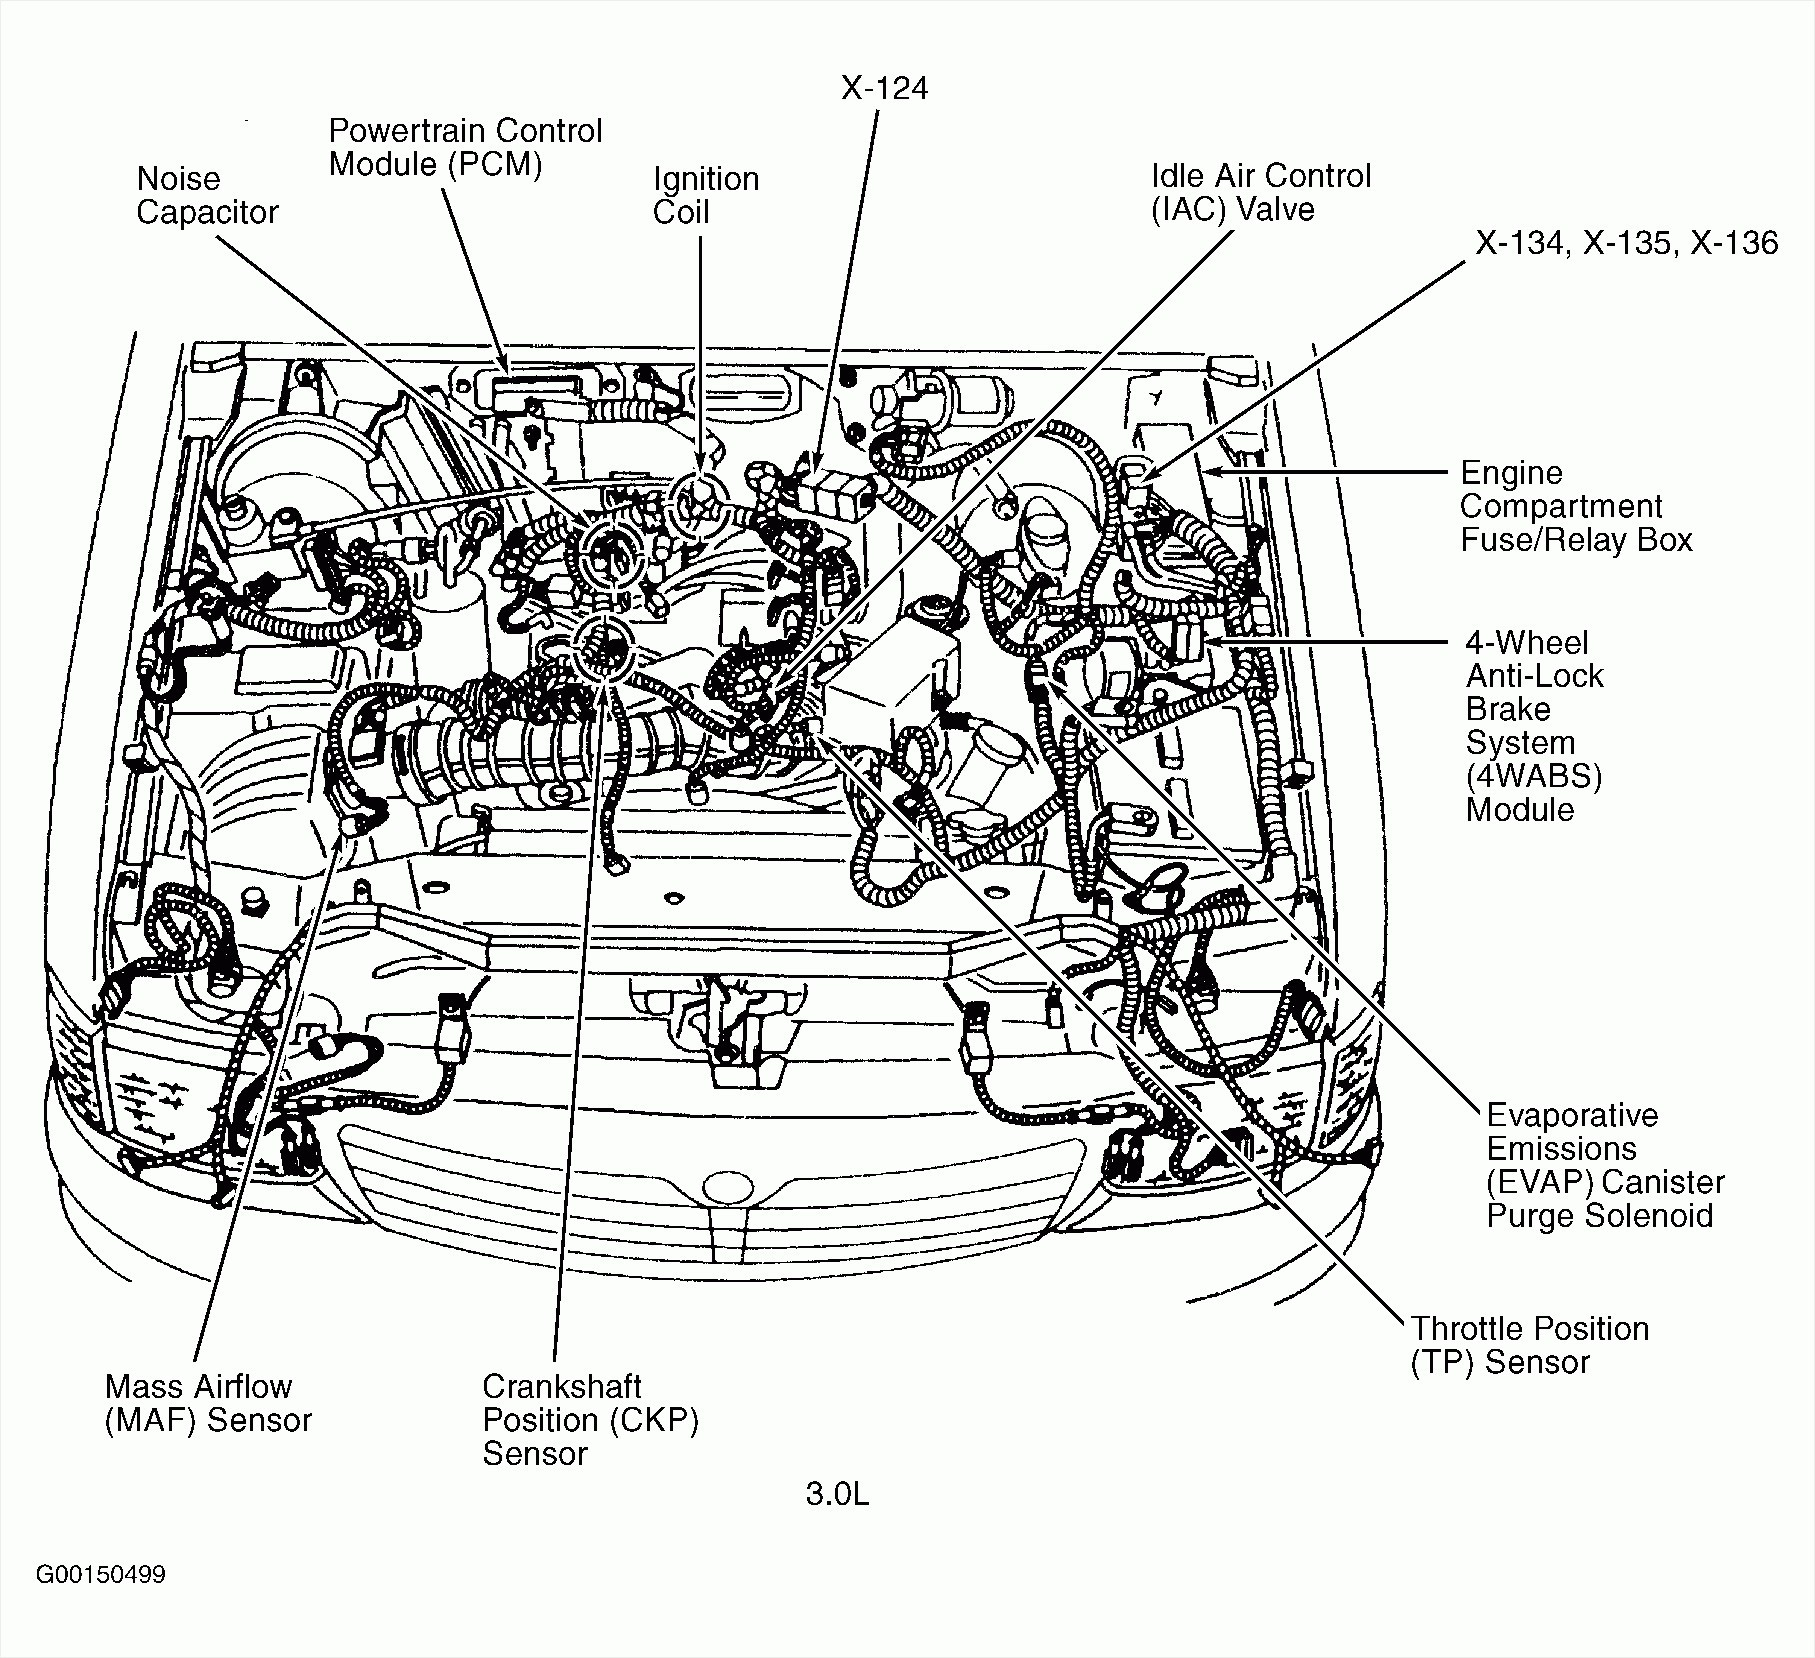 nissan 3 0 engine diagram enthusiast wiring diagrams u2022 rh bwpartnersautos com 1999 nissan quest engine diagram 2005 nissan quest engine diagram